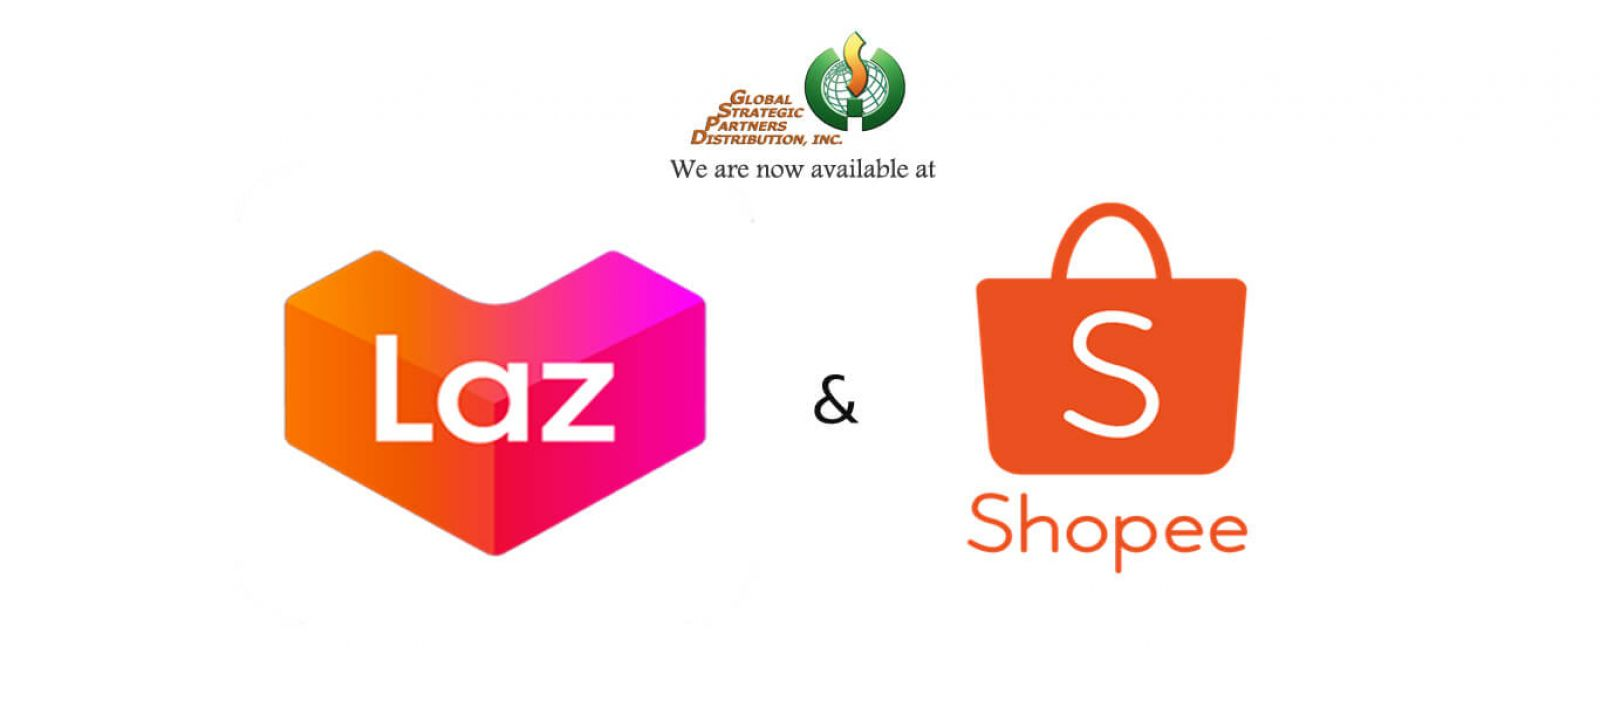 Gspdi At Lazada And Shopee BANNER